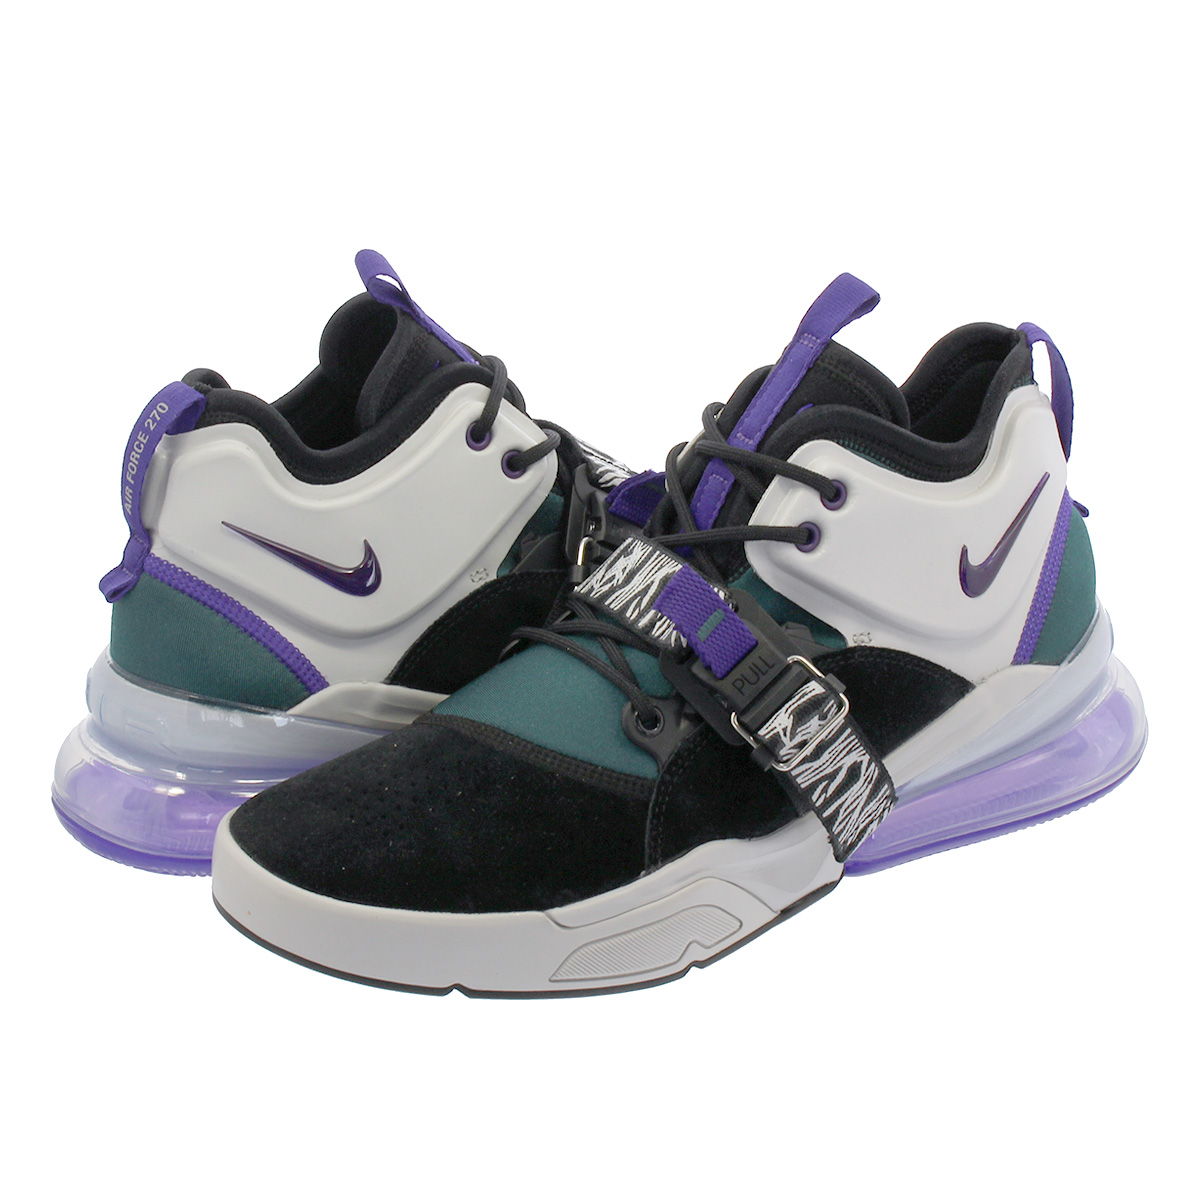 2861d1d98556d2 SELECT SHOP LOWTEX  NIKE AIR FORCE 270 Nike air force 270 BLACK COURT  PURPLE DARK ATOMIC TEAL ah6772-005